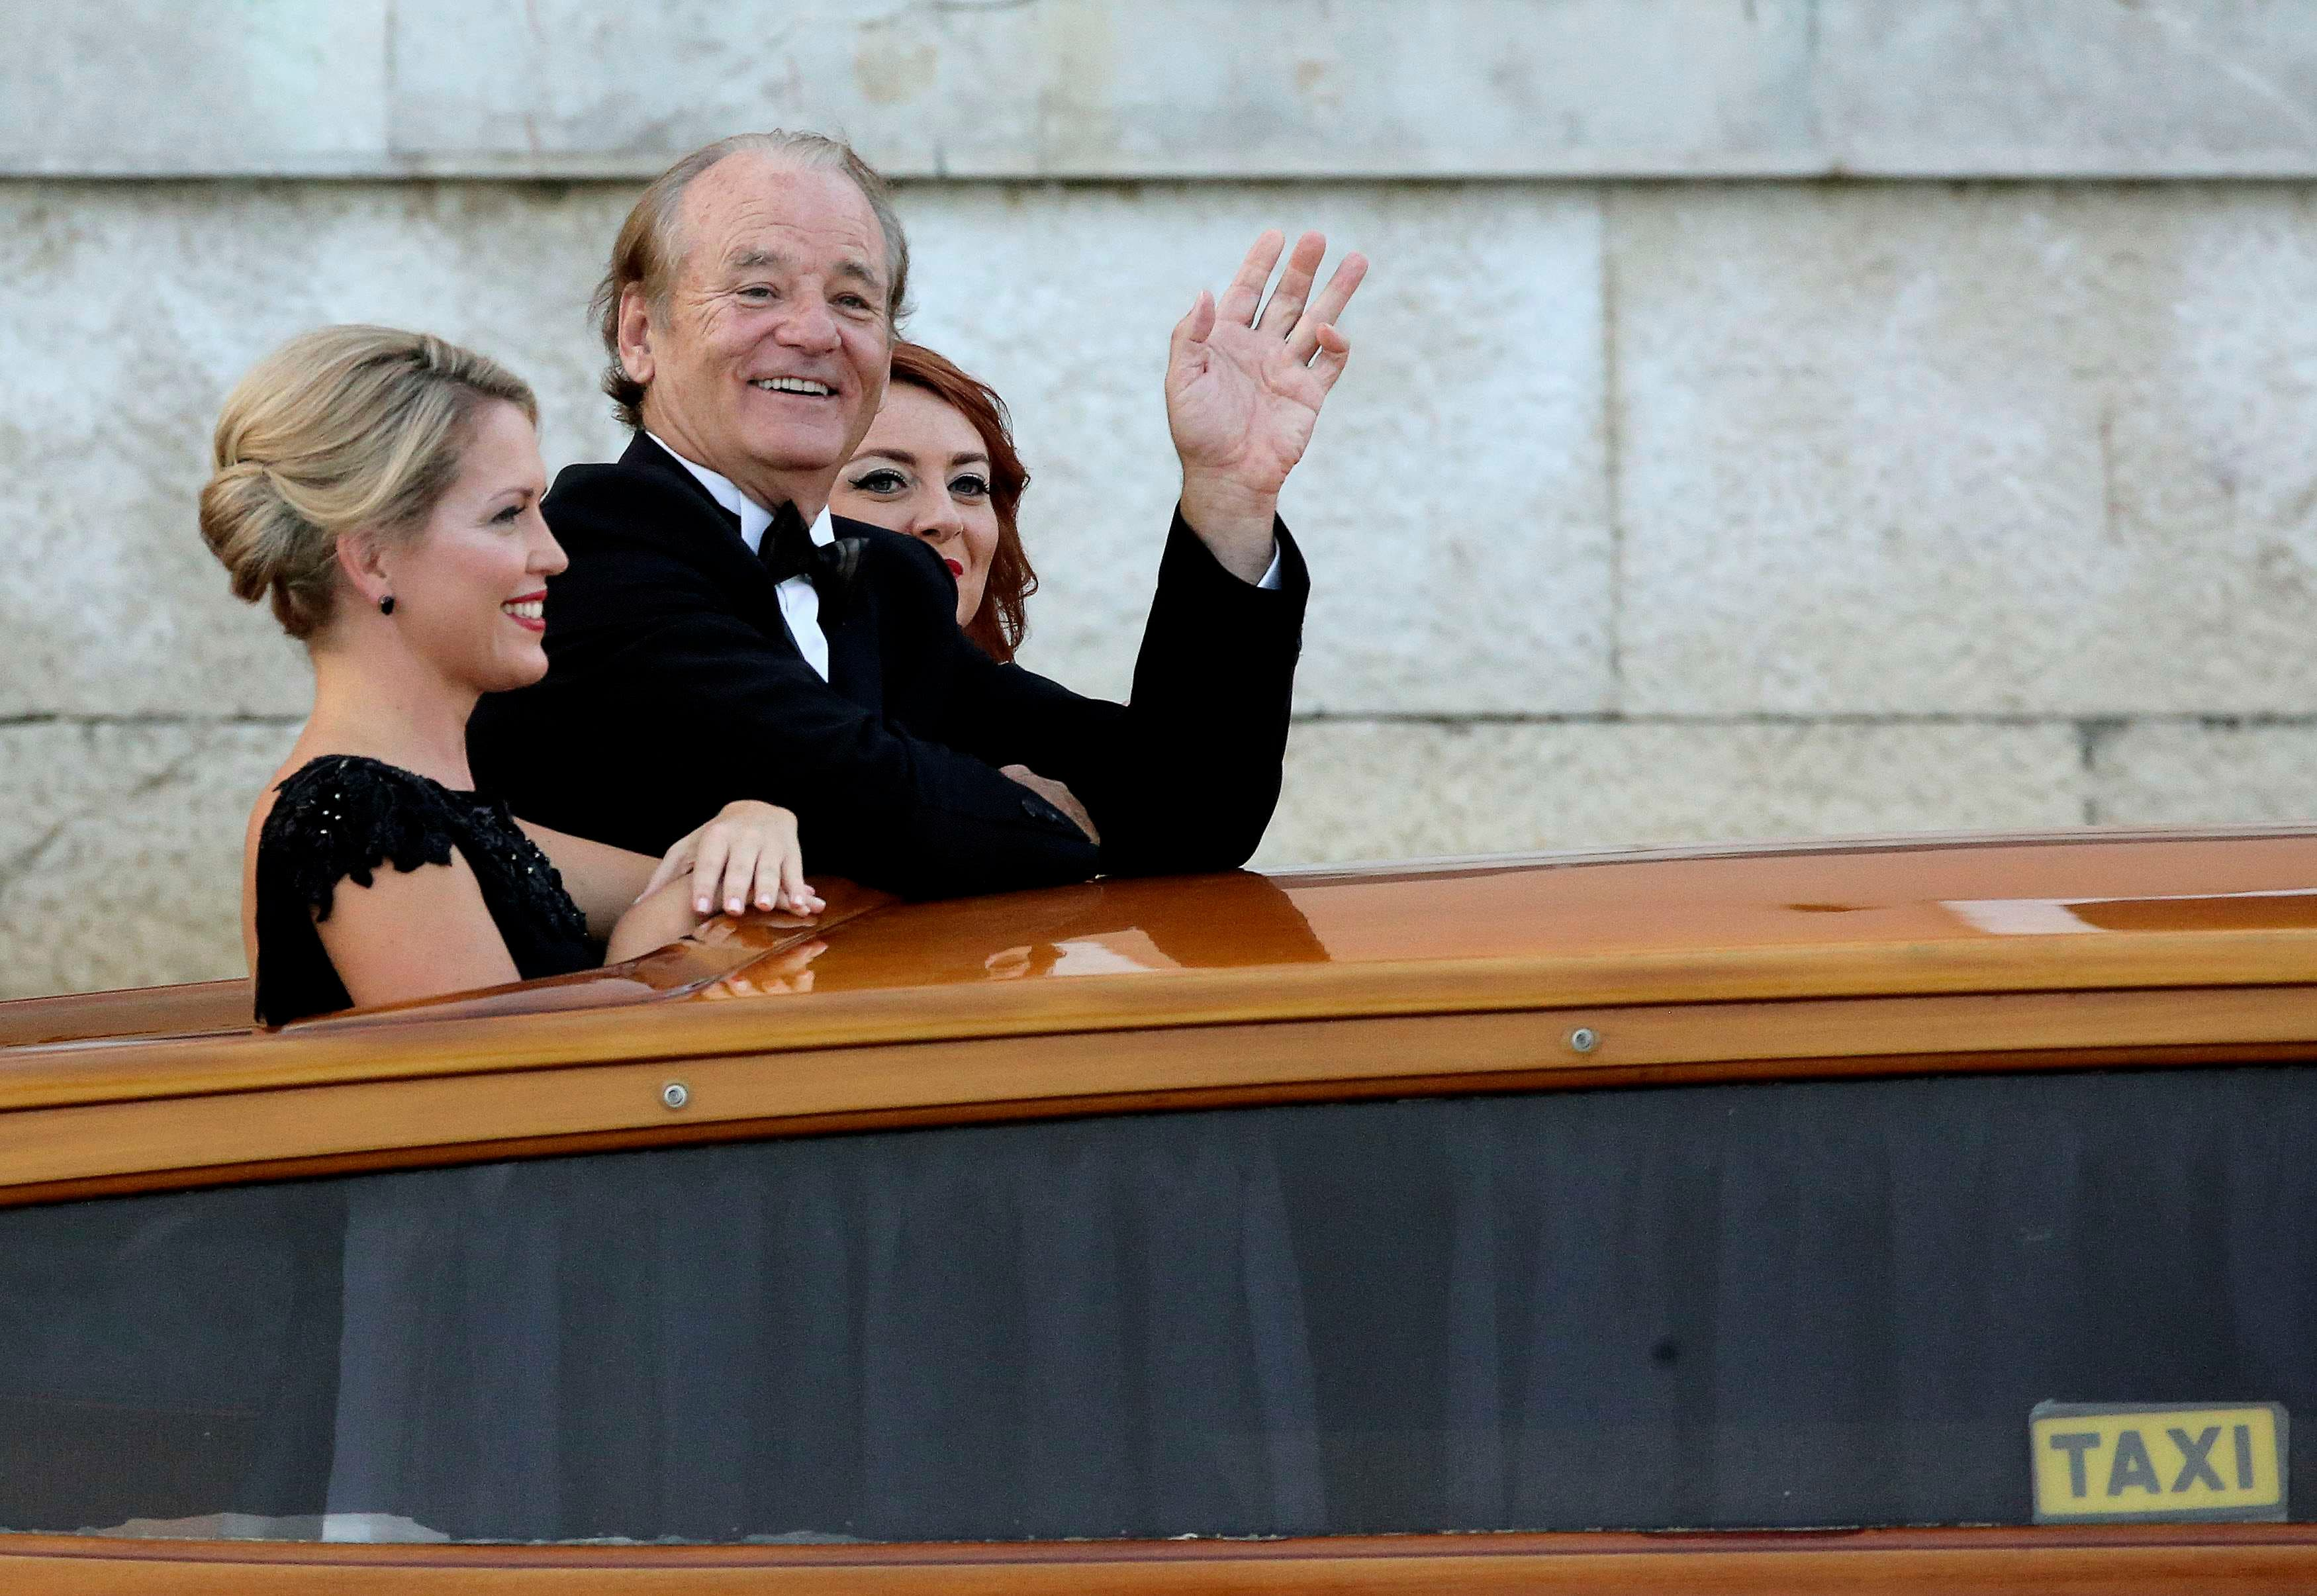 U.S. actor Bill Murray waves as he boards a taxi boat transporting guests to the venue of a gala dinner ahead of the official wedding ceremony, in Venice September 27, 2014.  (Reuters)